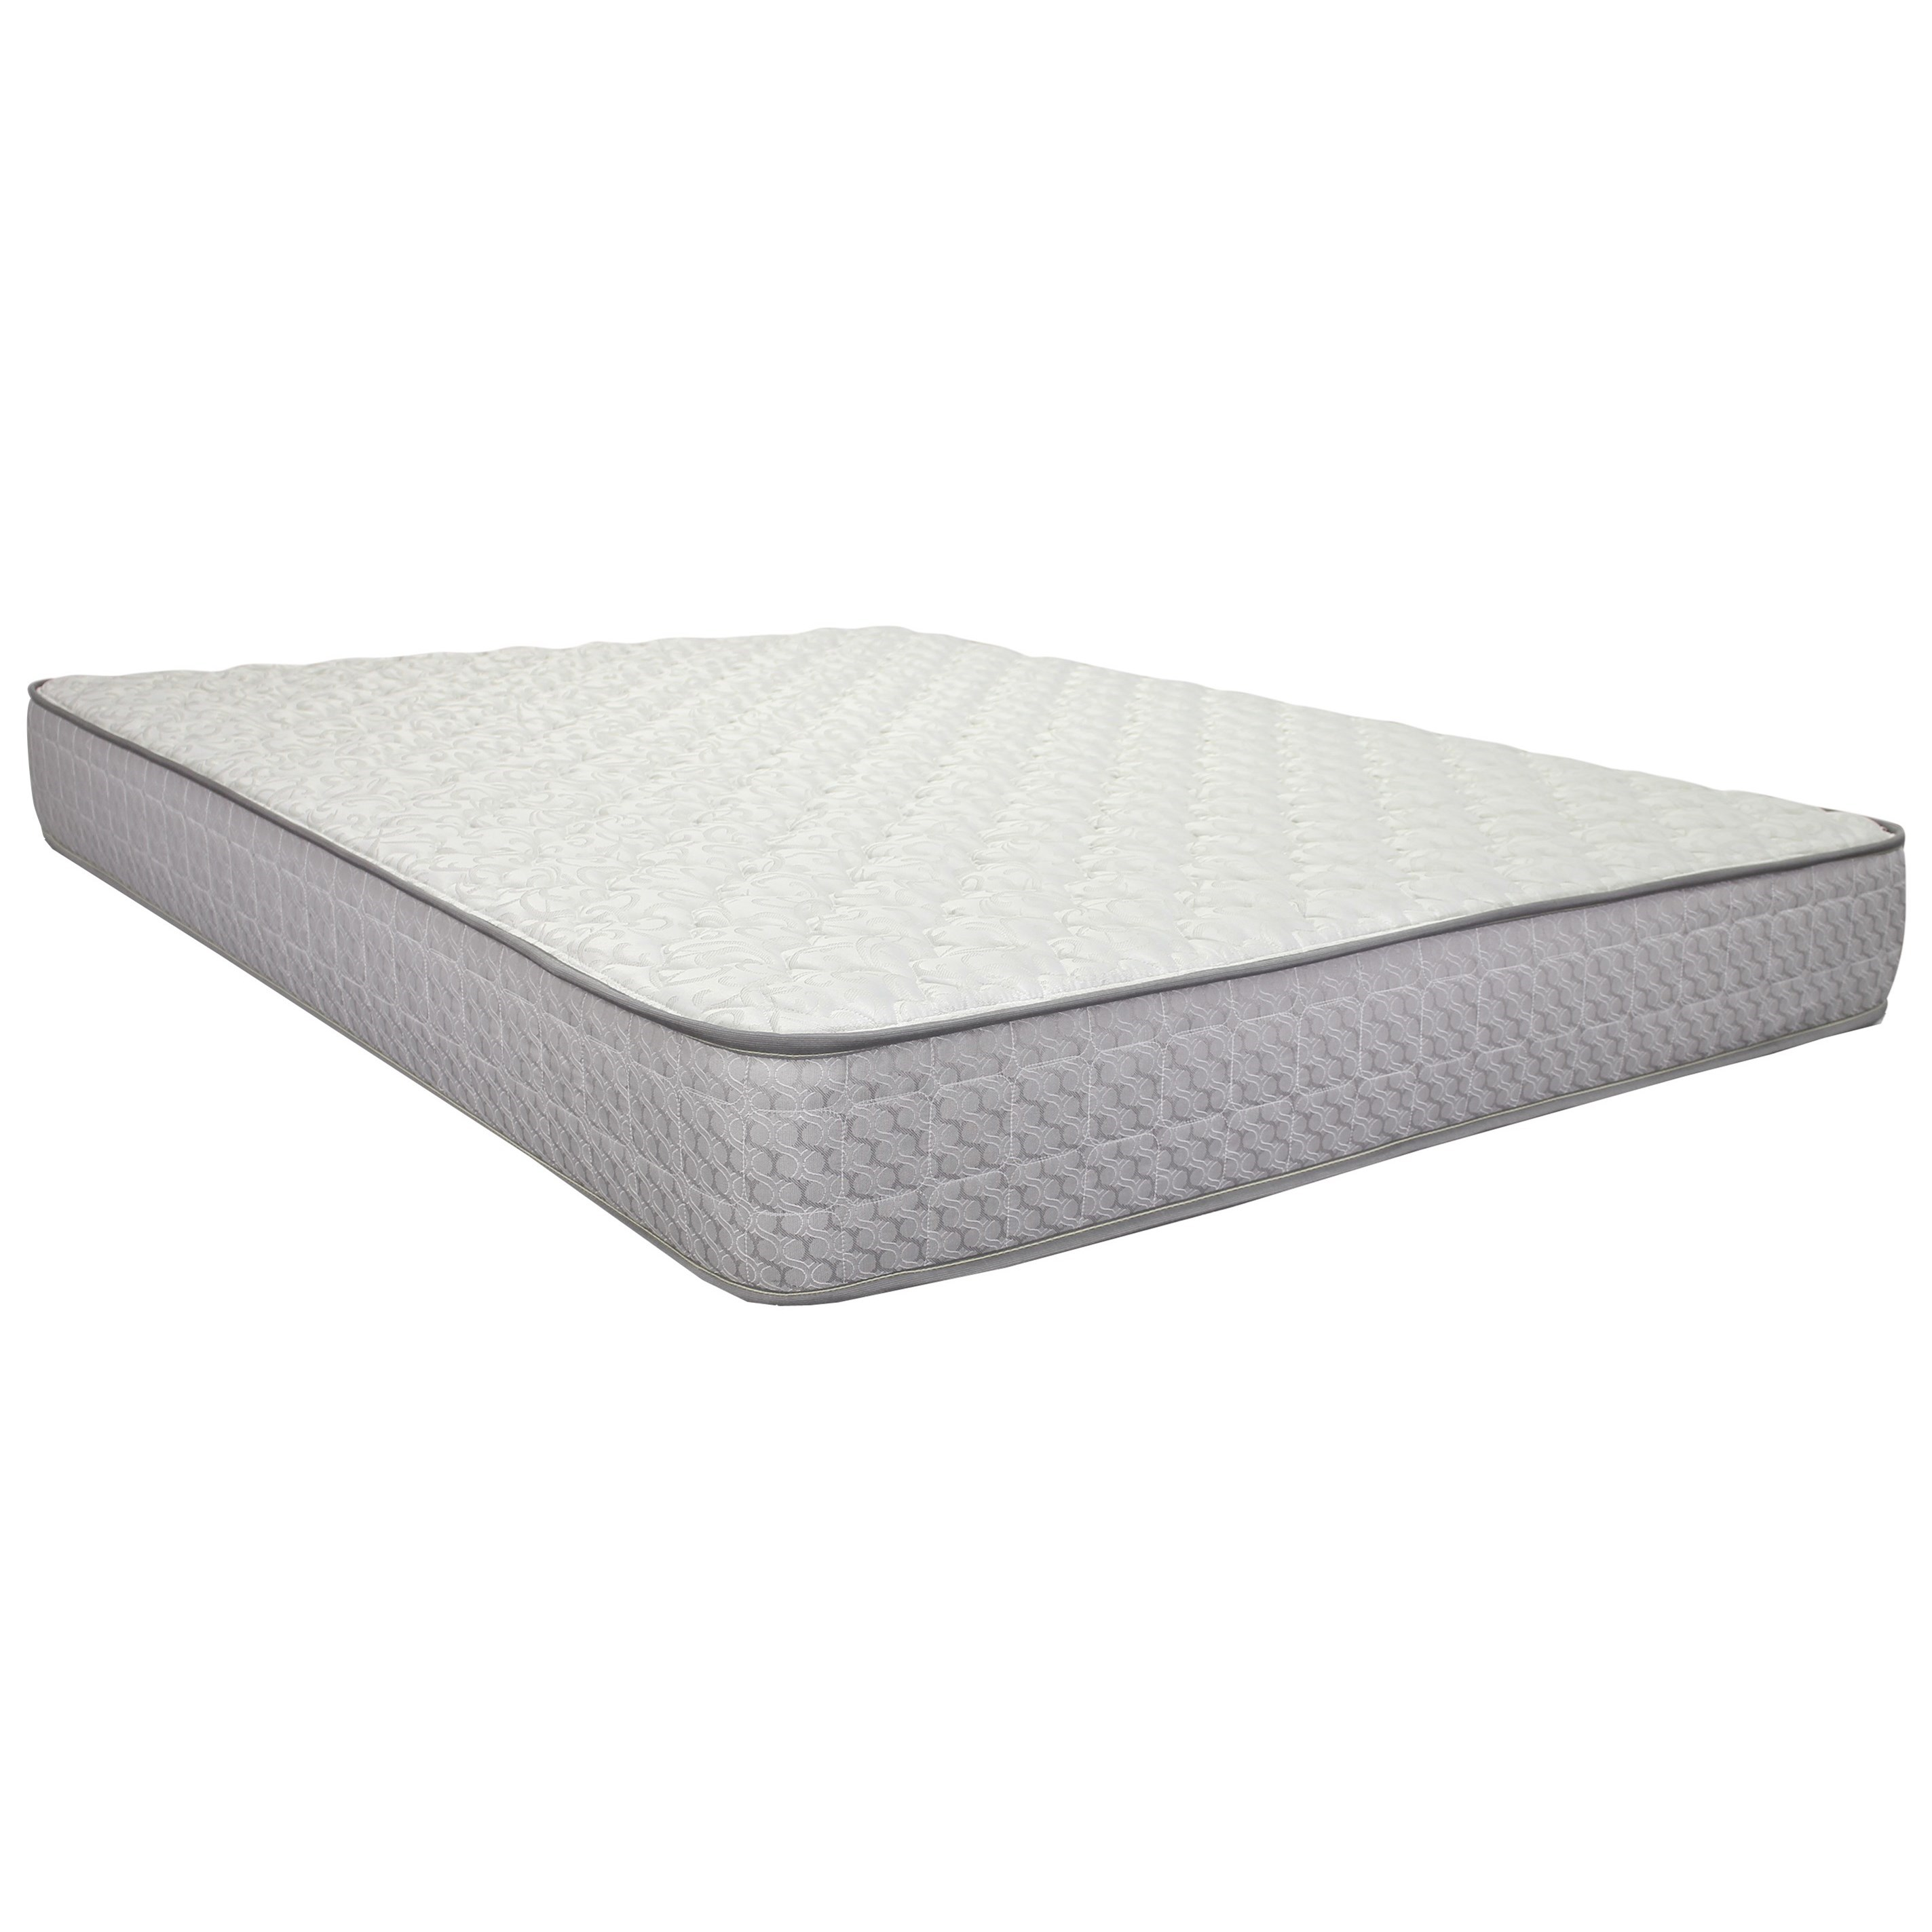 "King 9 1/2"" Firm Innerspring Mattress"